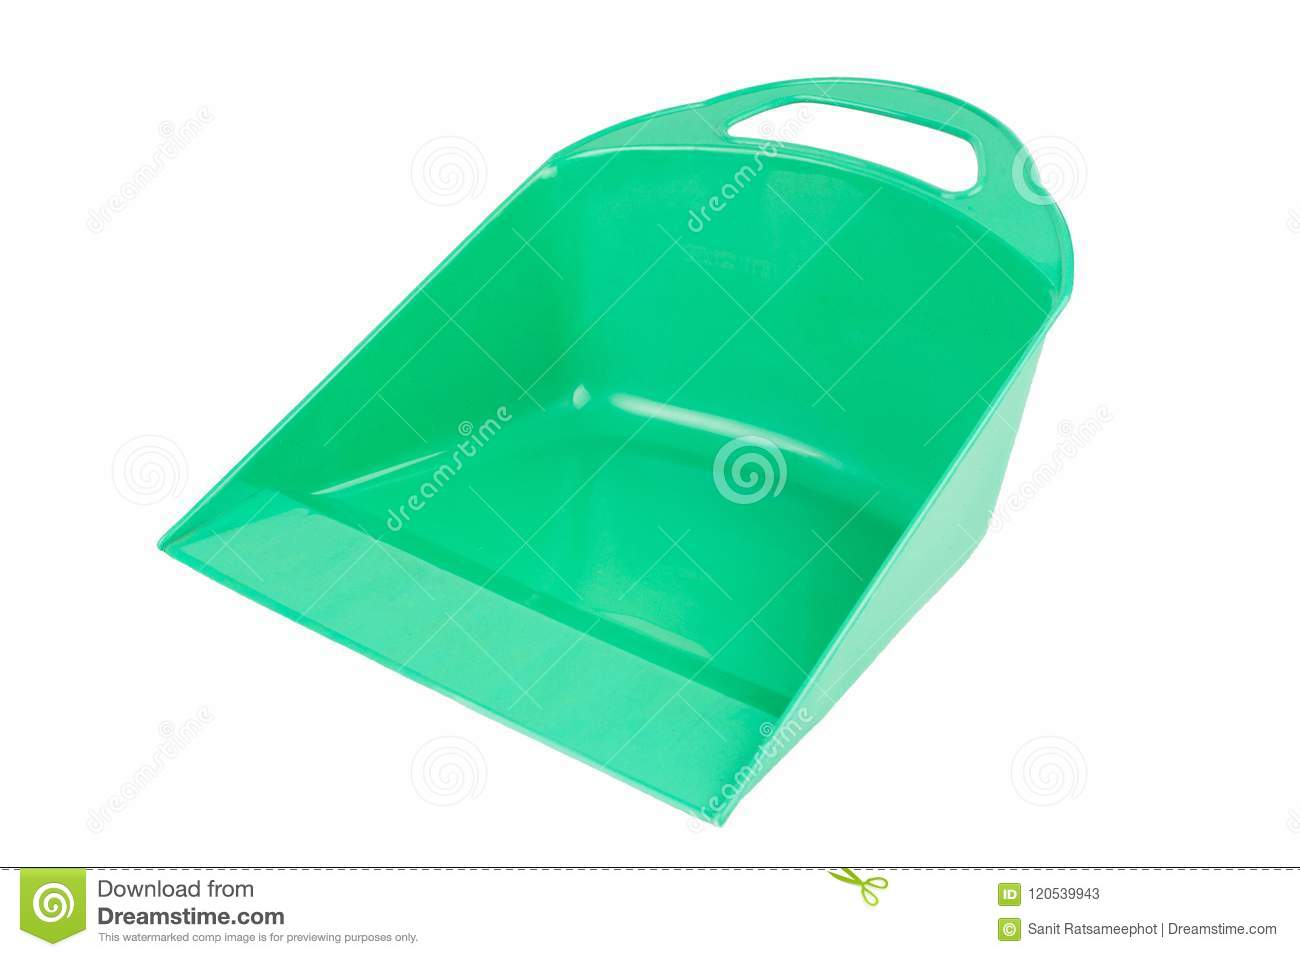 The Green Plastic Dustpan small version.